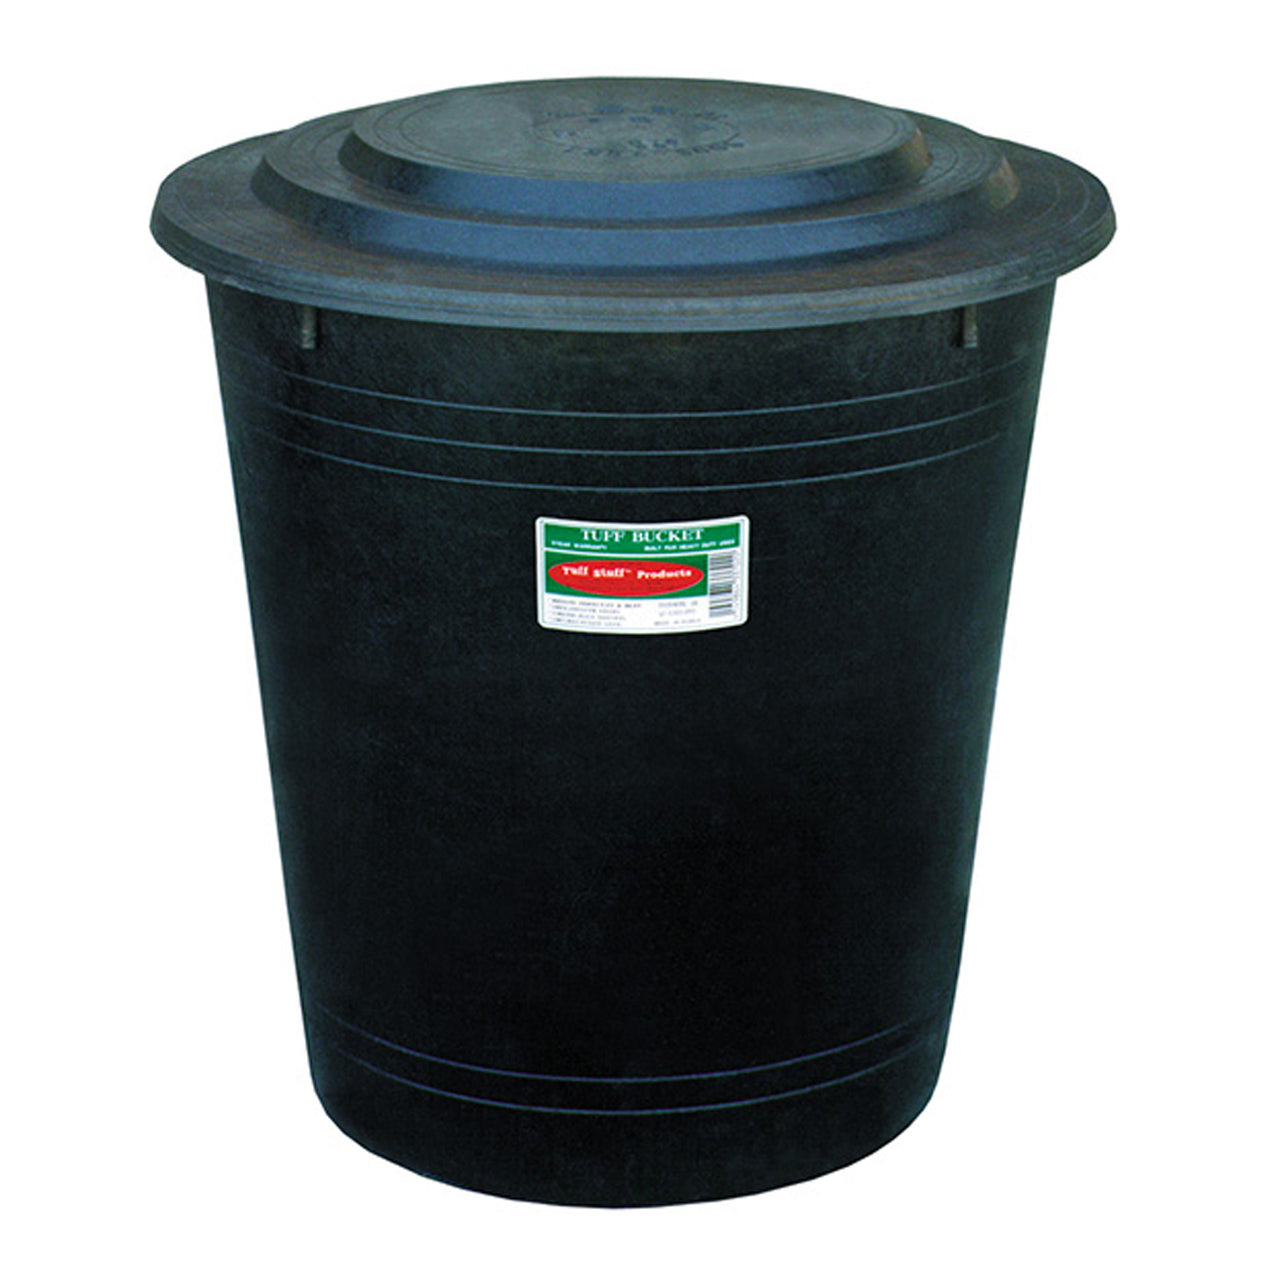 Tuff Stuff Drum With Lid 27 Gal - Tanks Drums Tuff Stuff - Canada